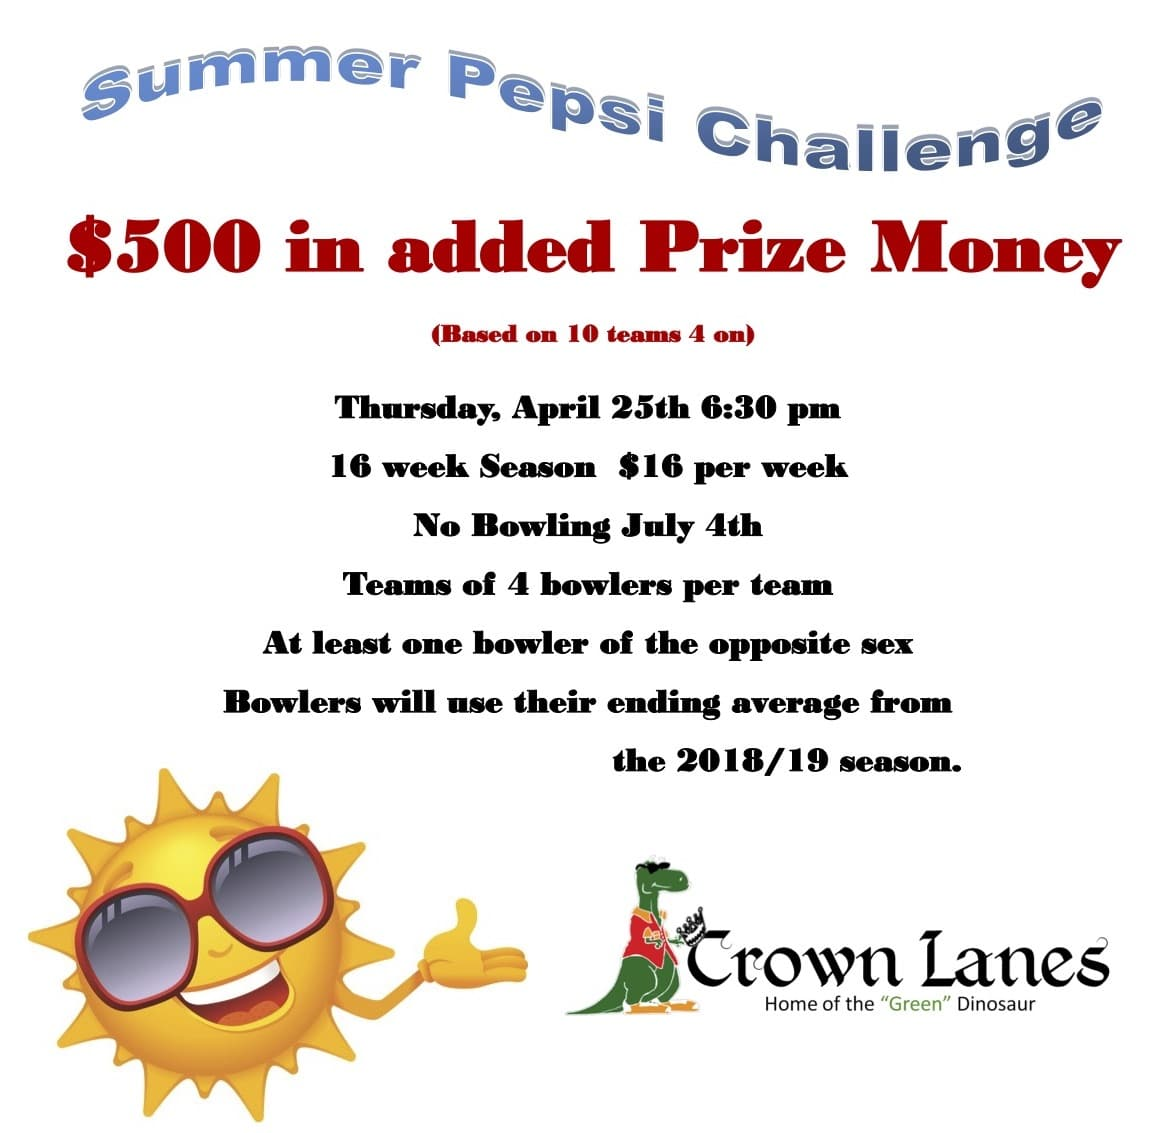 Summer Pepsi Challenge League